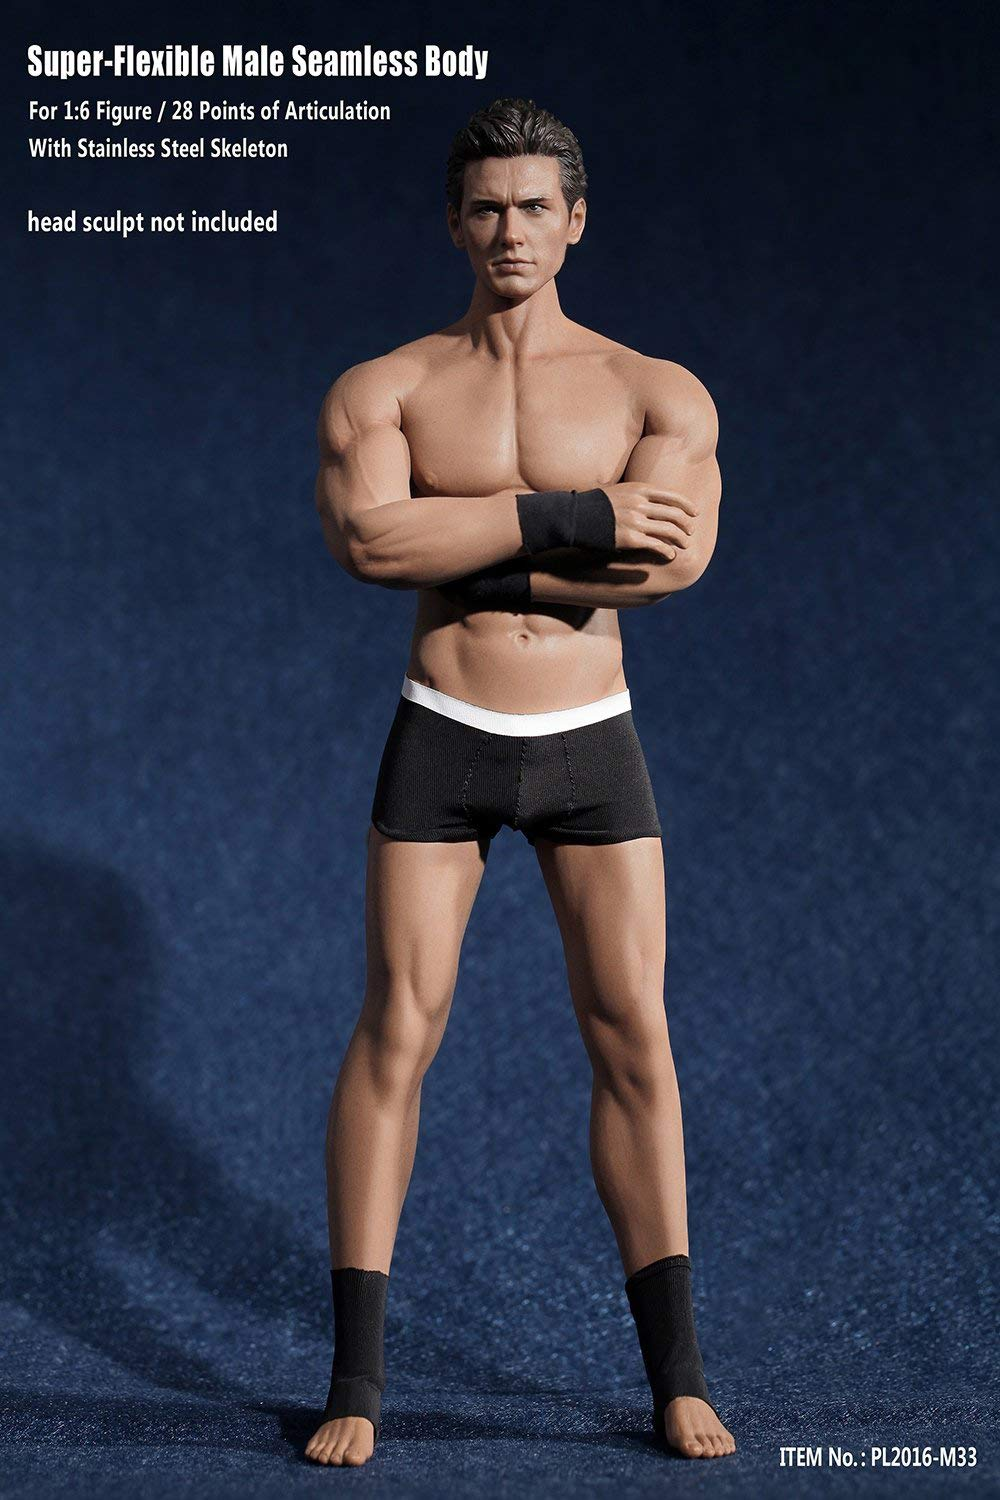 Phicen 1/6 Scale Super Flexible Male Muscular Seamless Body PL2016-M33